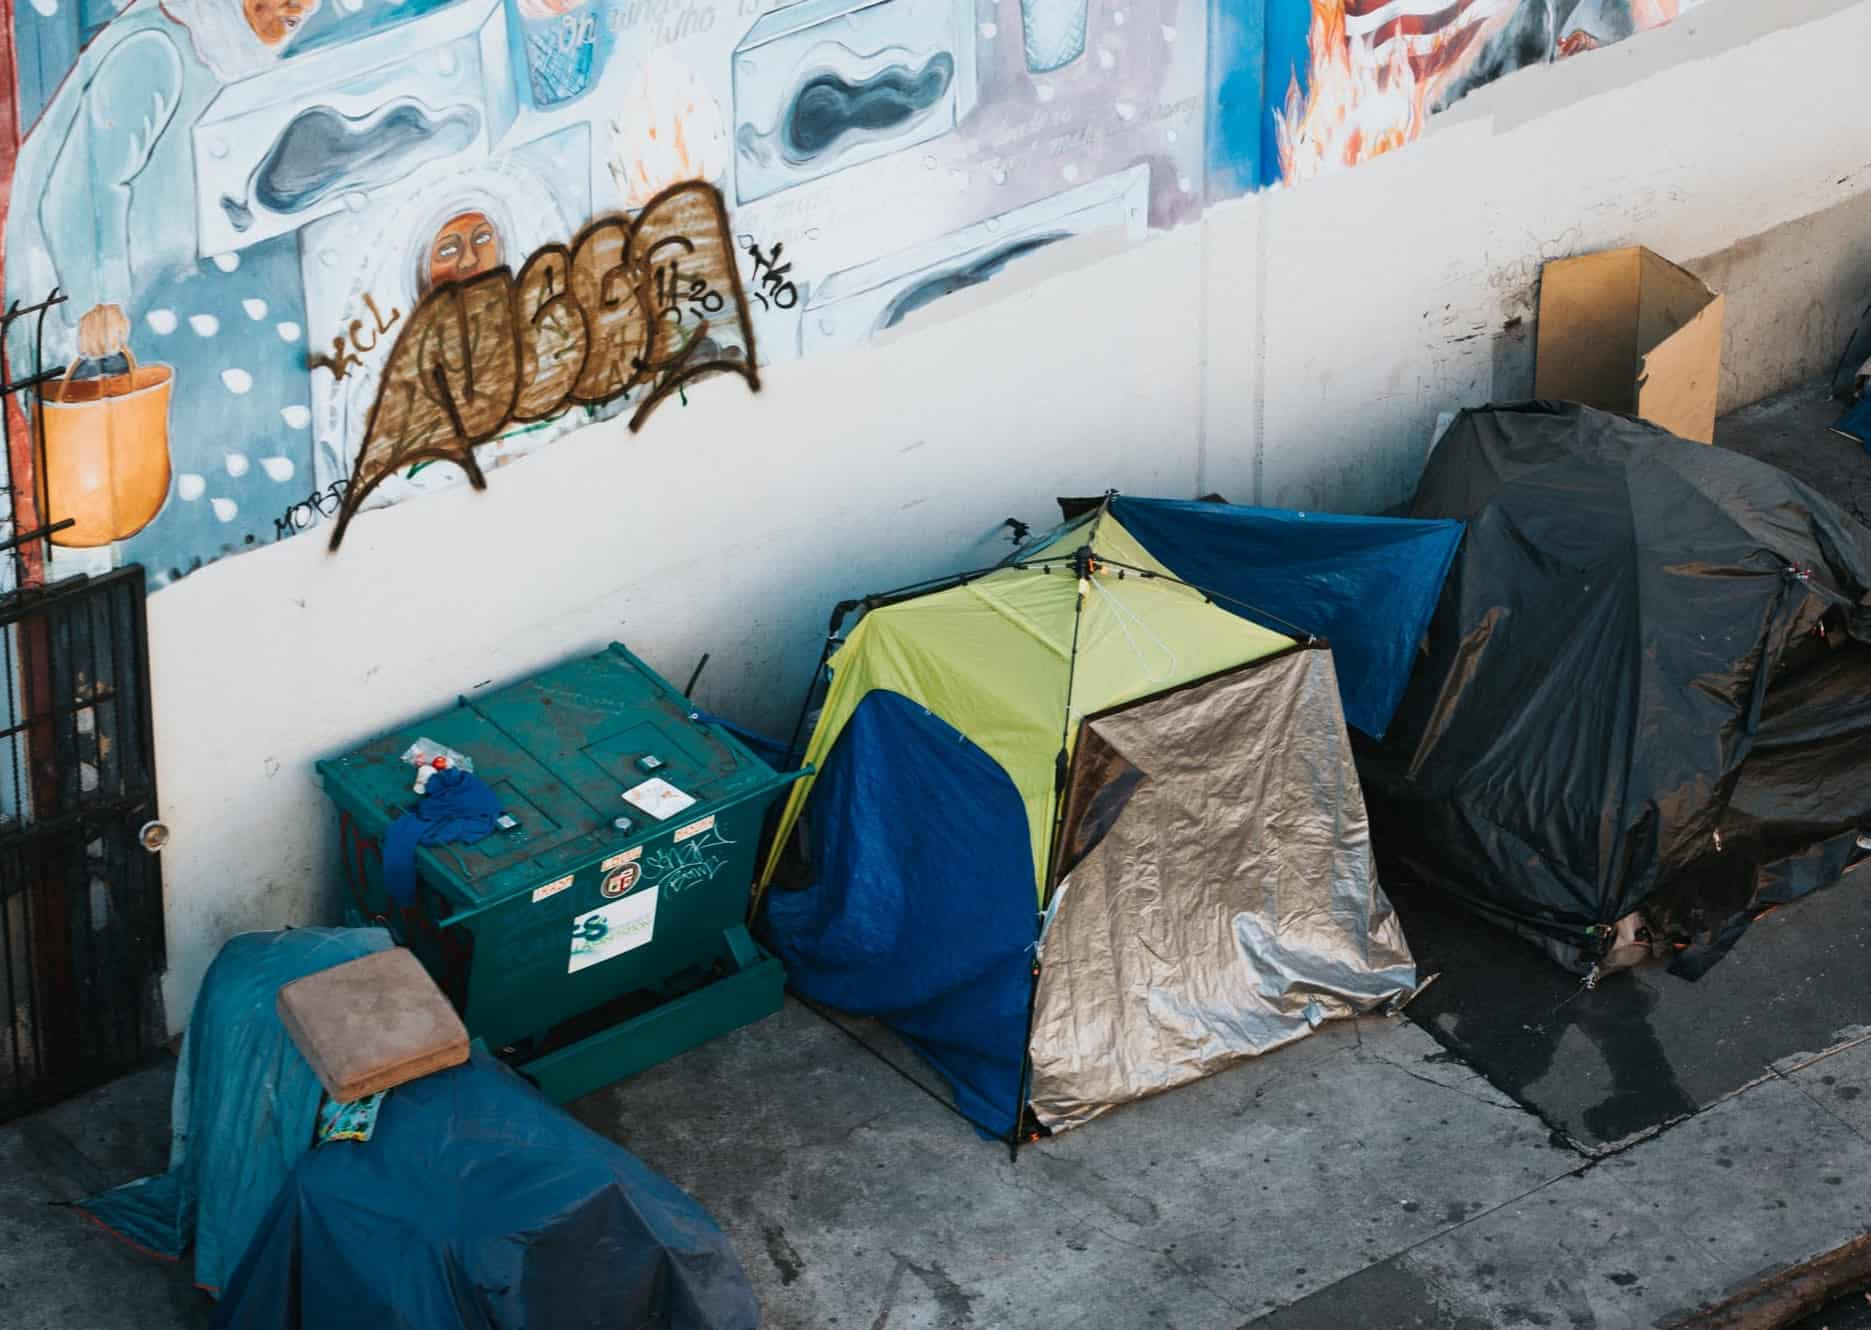 Hispanics – Latinos disproportionately affected by homelessness 'tidal wave'